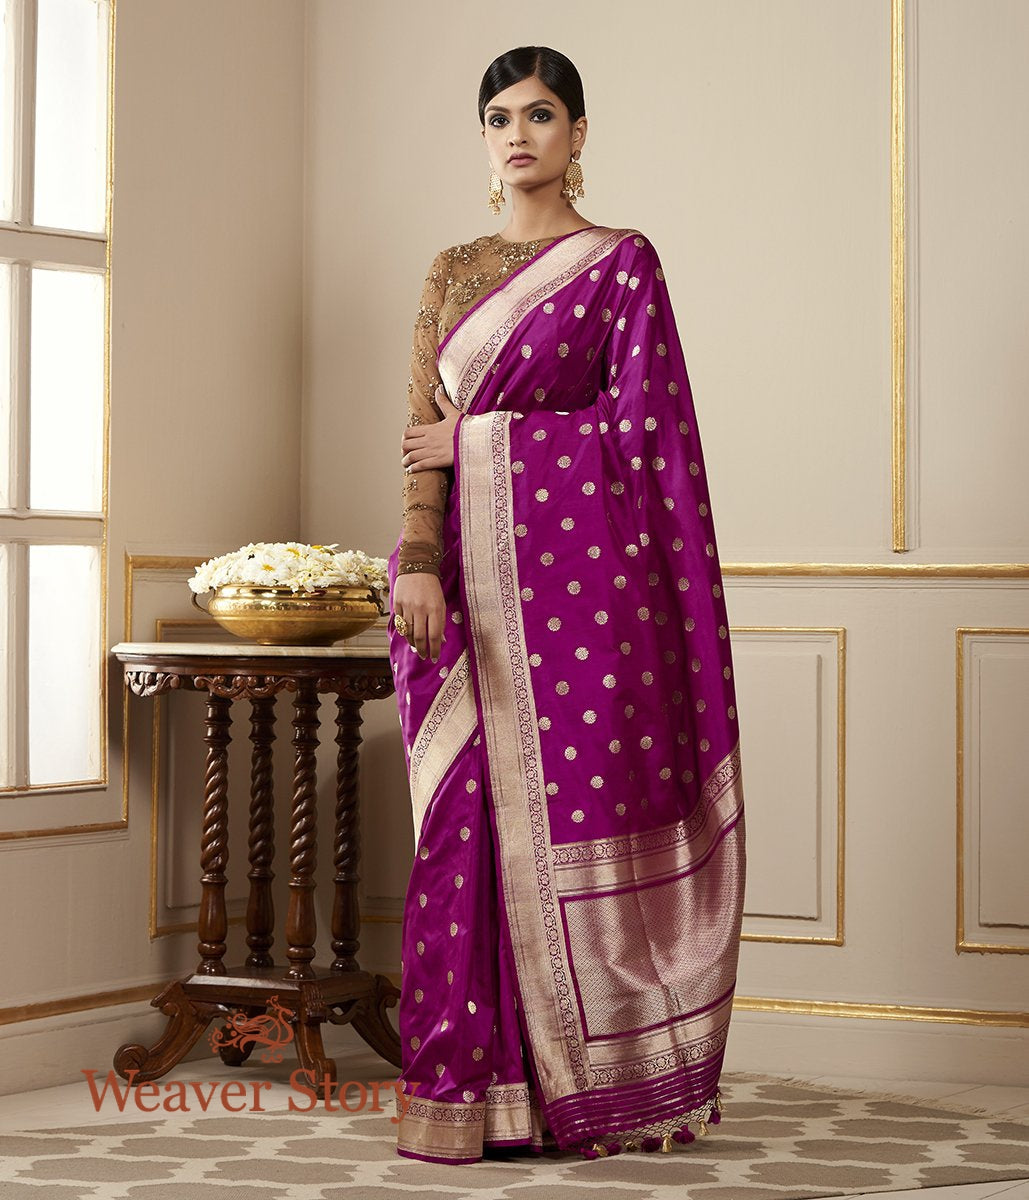 Handwoven Purple Katan Silk Saree with Asharfi Booti